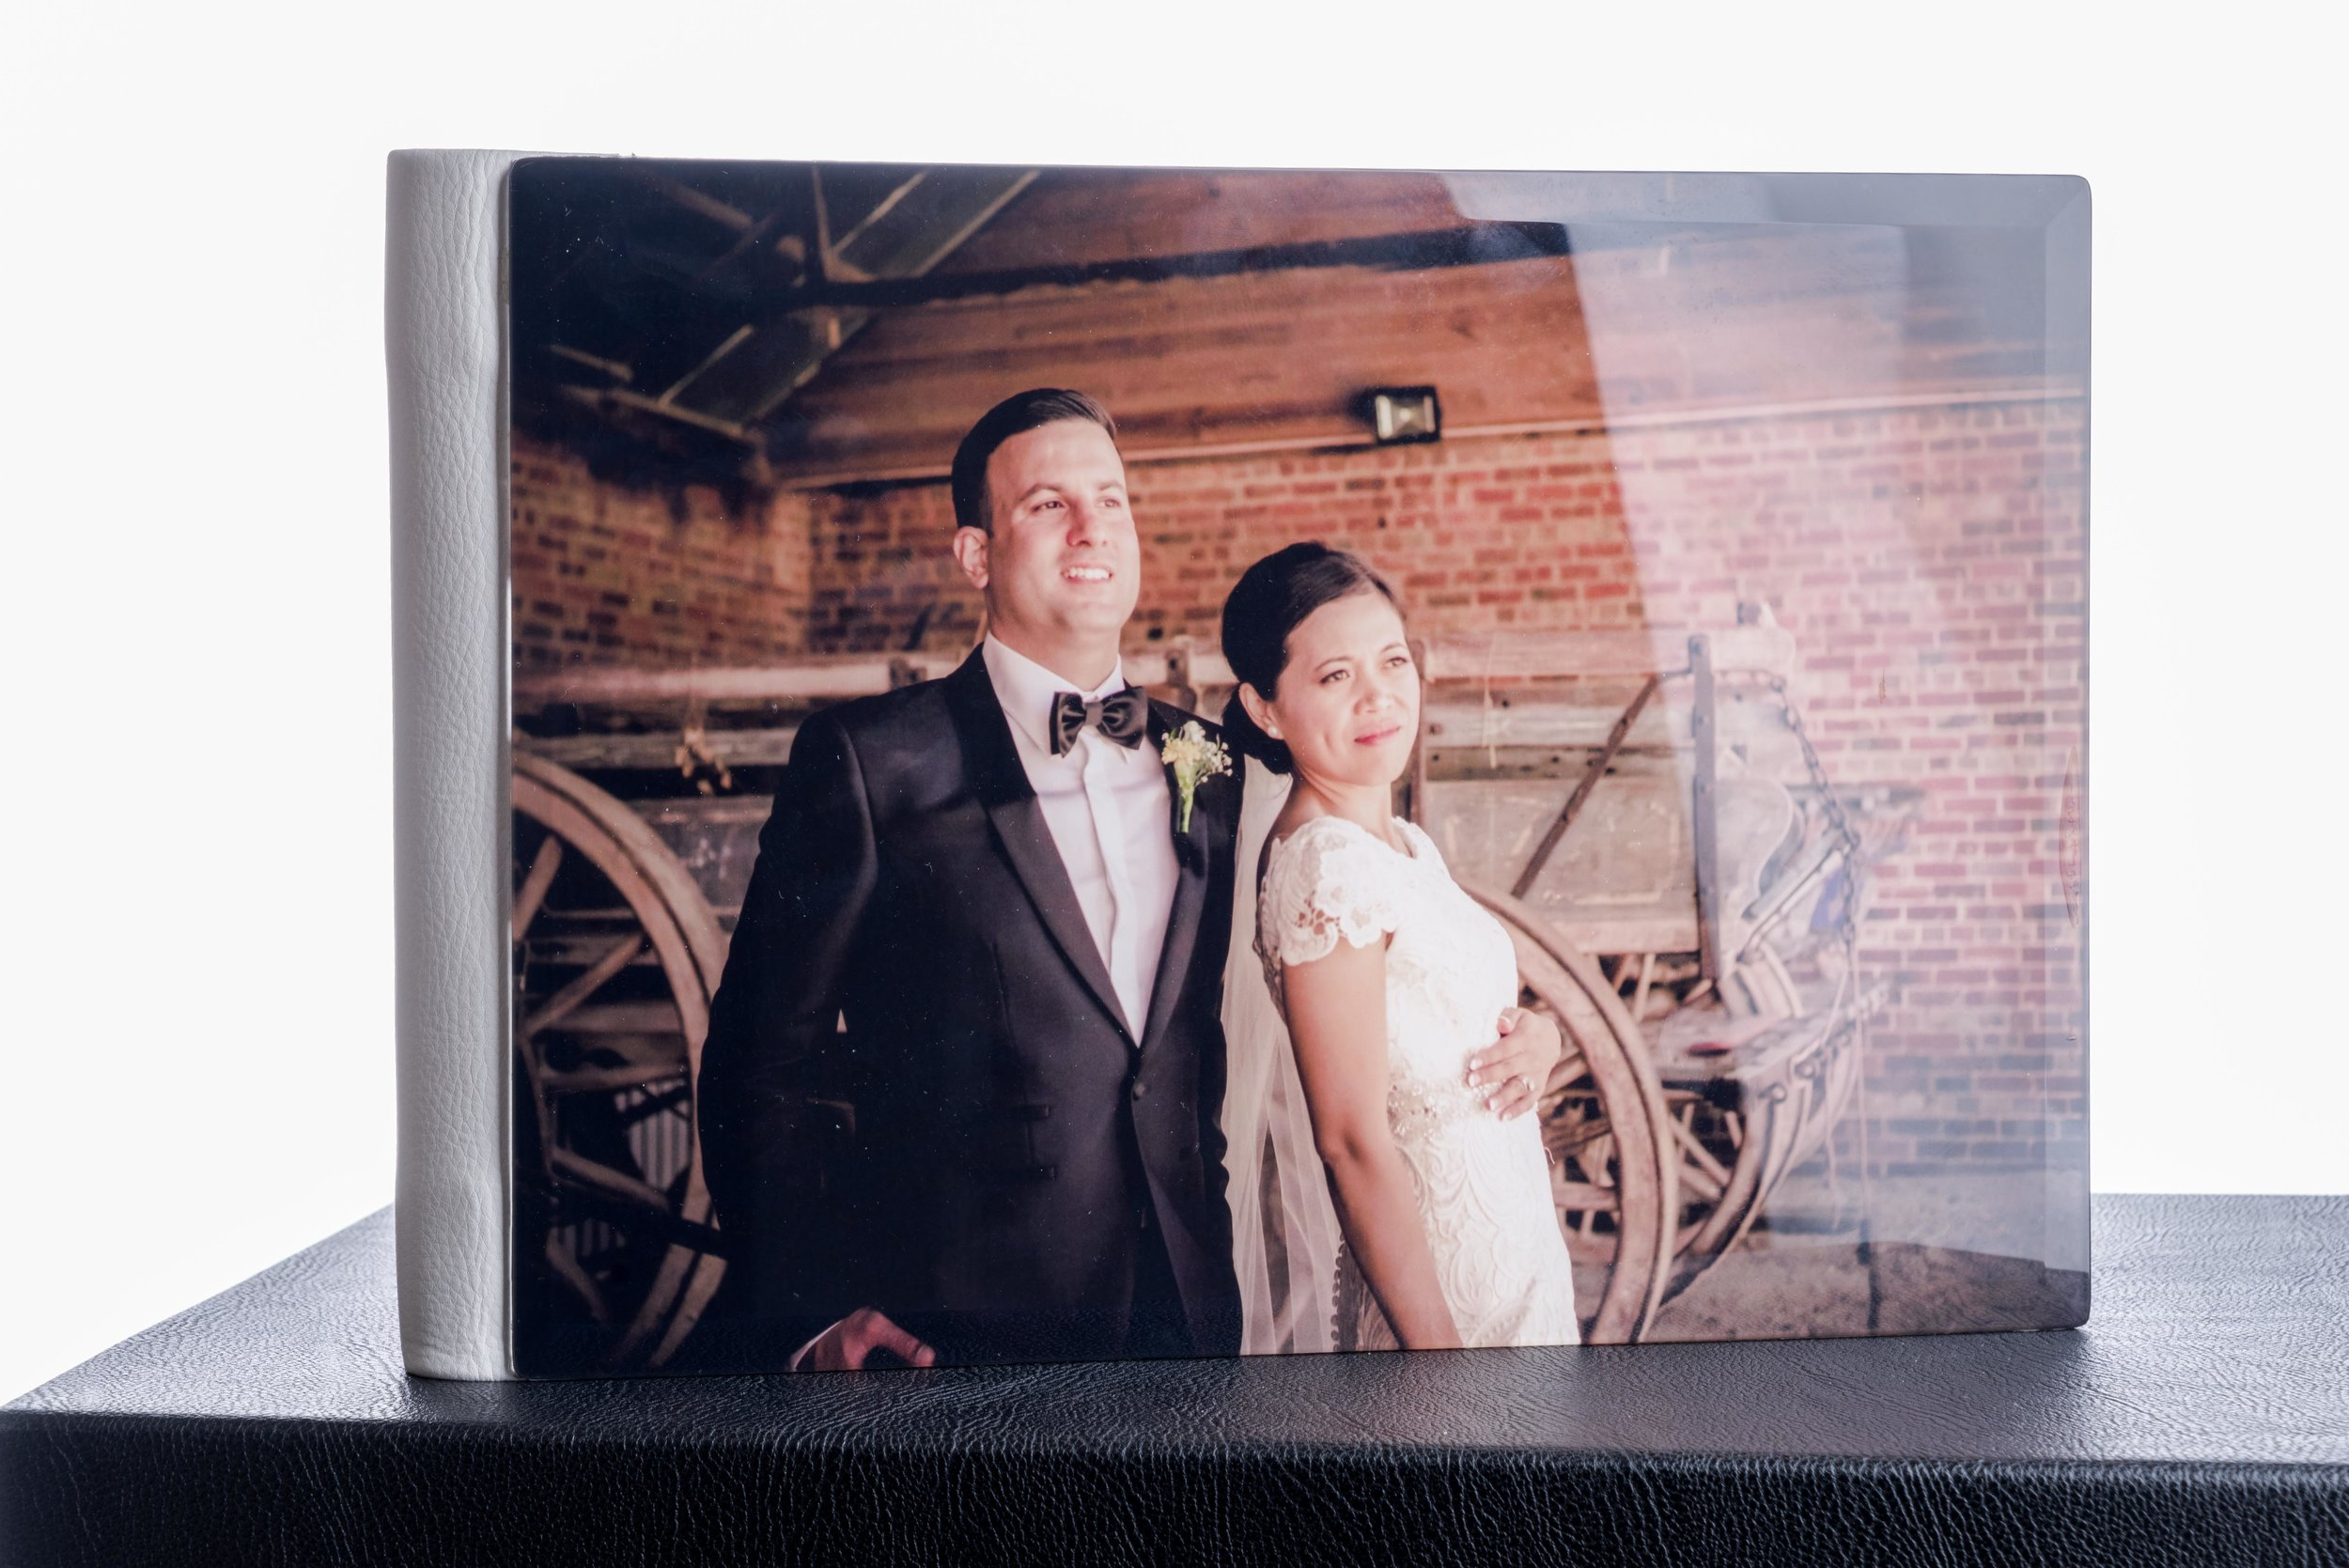 Crystal Photo Album    11x8 20 pages $400   11x8 30 pages $500   11x8 40 pages $600    14x11 20 pages $500   14x11 30 pages $600     14x11 40 pages $700